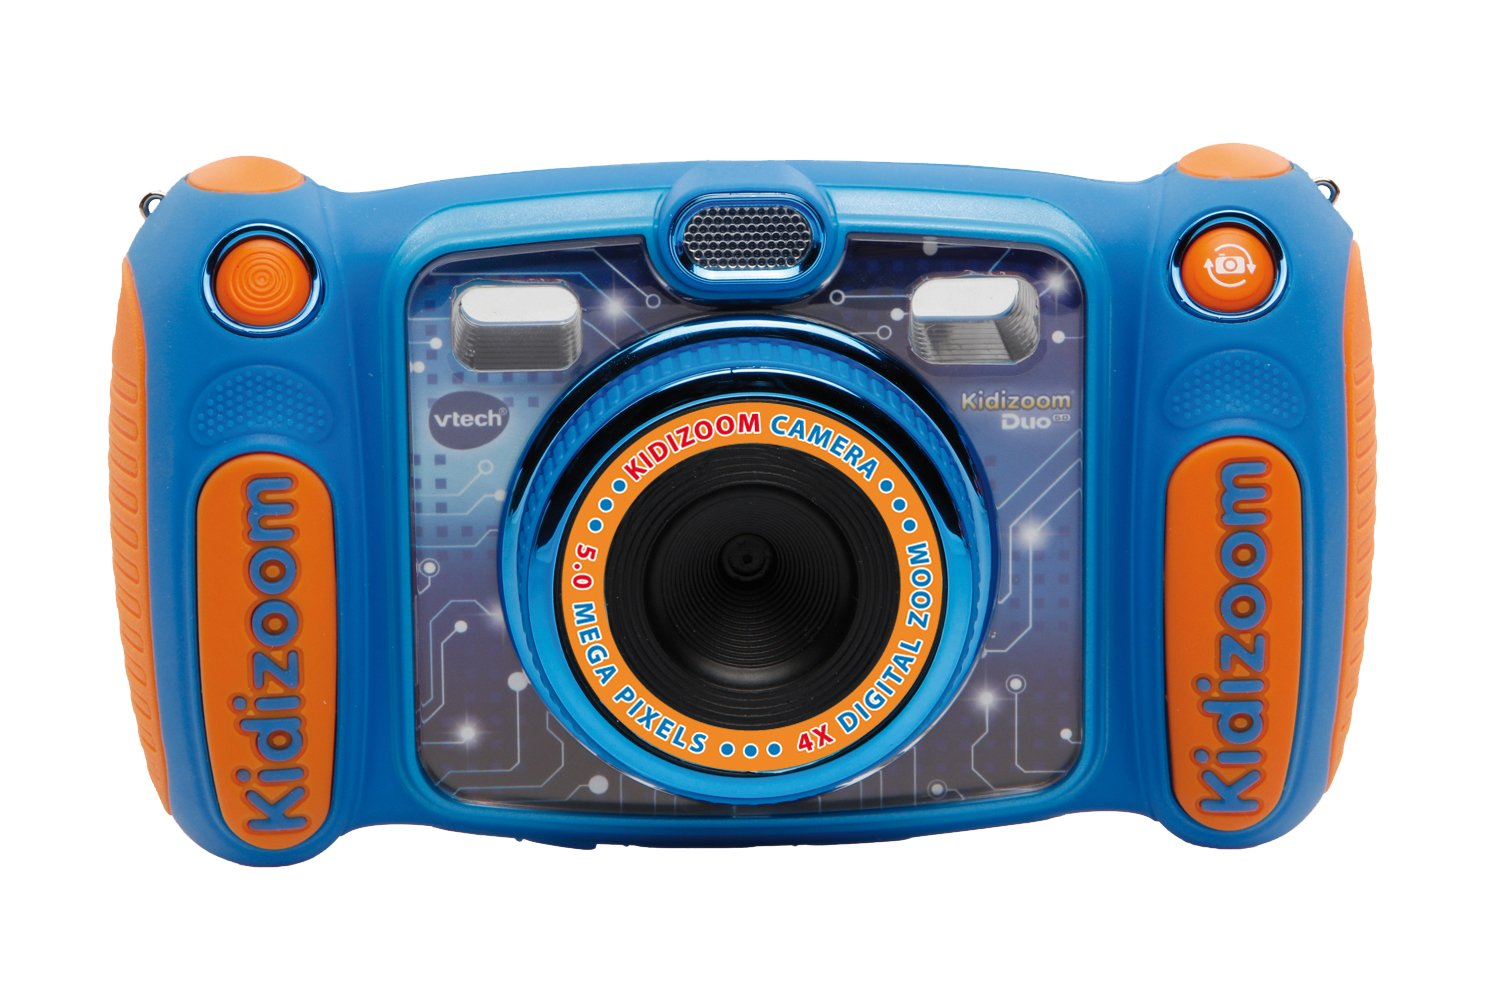 VTech - 507105 - Kidizoom Duo -bleu product image